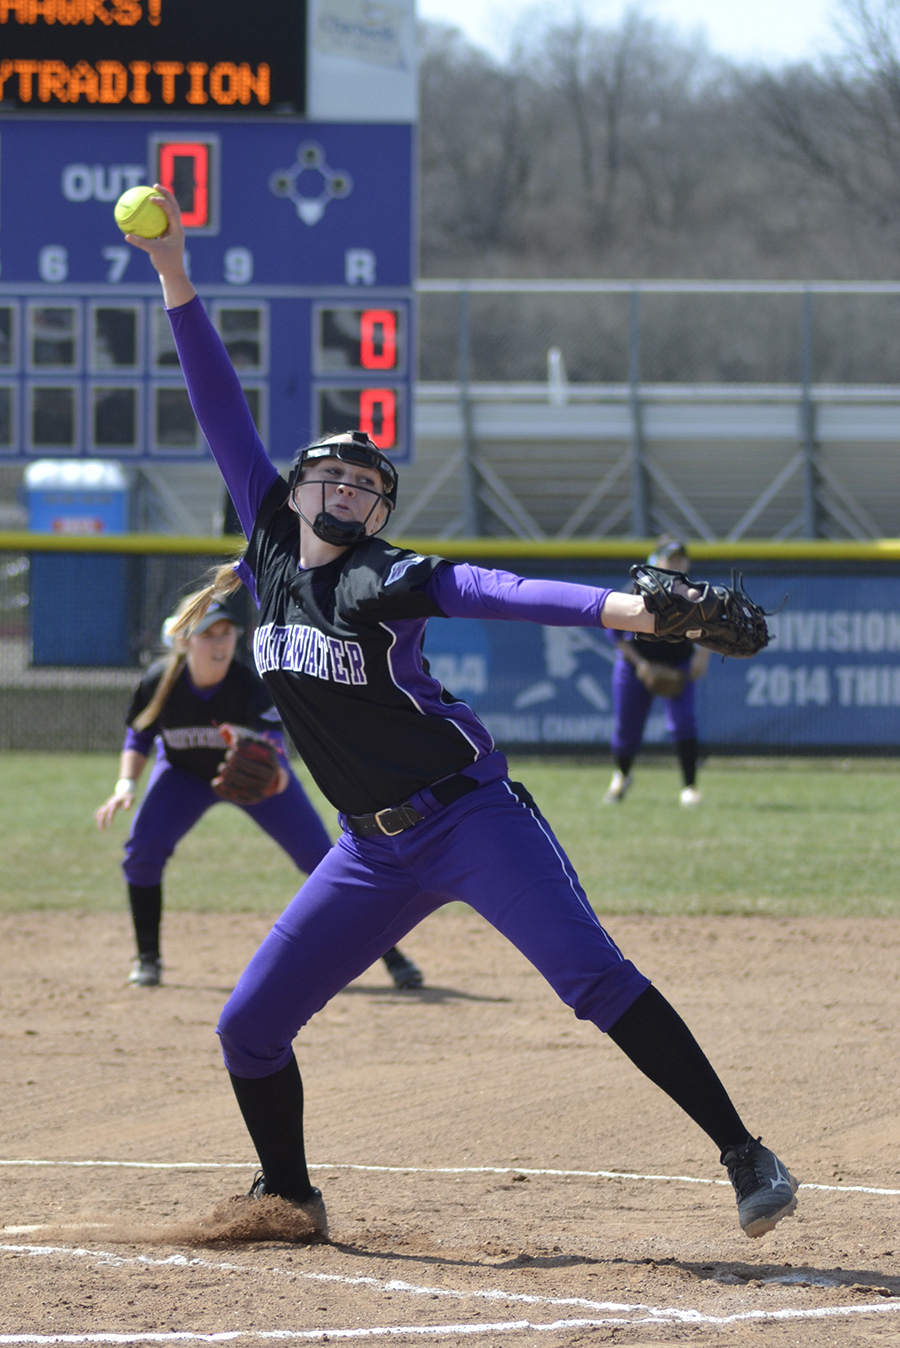 Freshman pitcher Bella Matthias pitched a complete game shutout victory against UW-La Crosse on April 1. Matthias owns a 5-3 record with 50 strikeouts in 52.2 innings for a 1.99 ERA. Photo by Sierra High